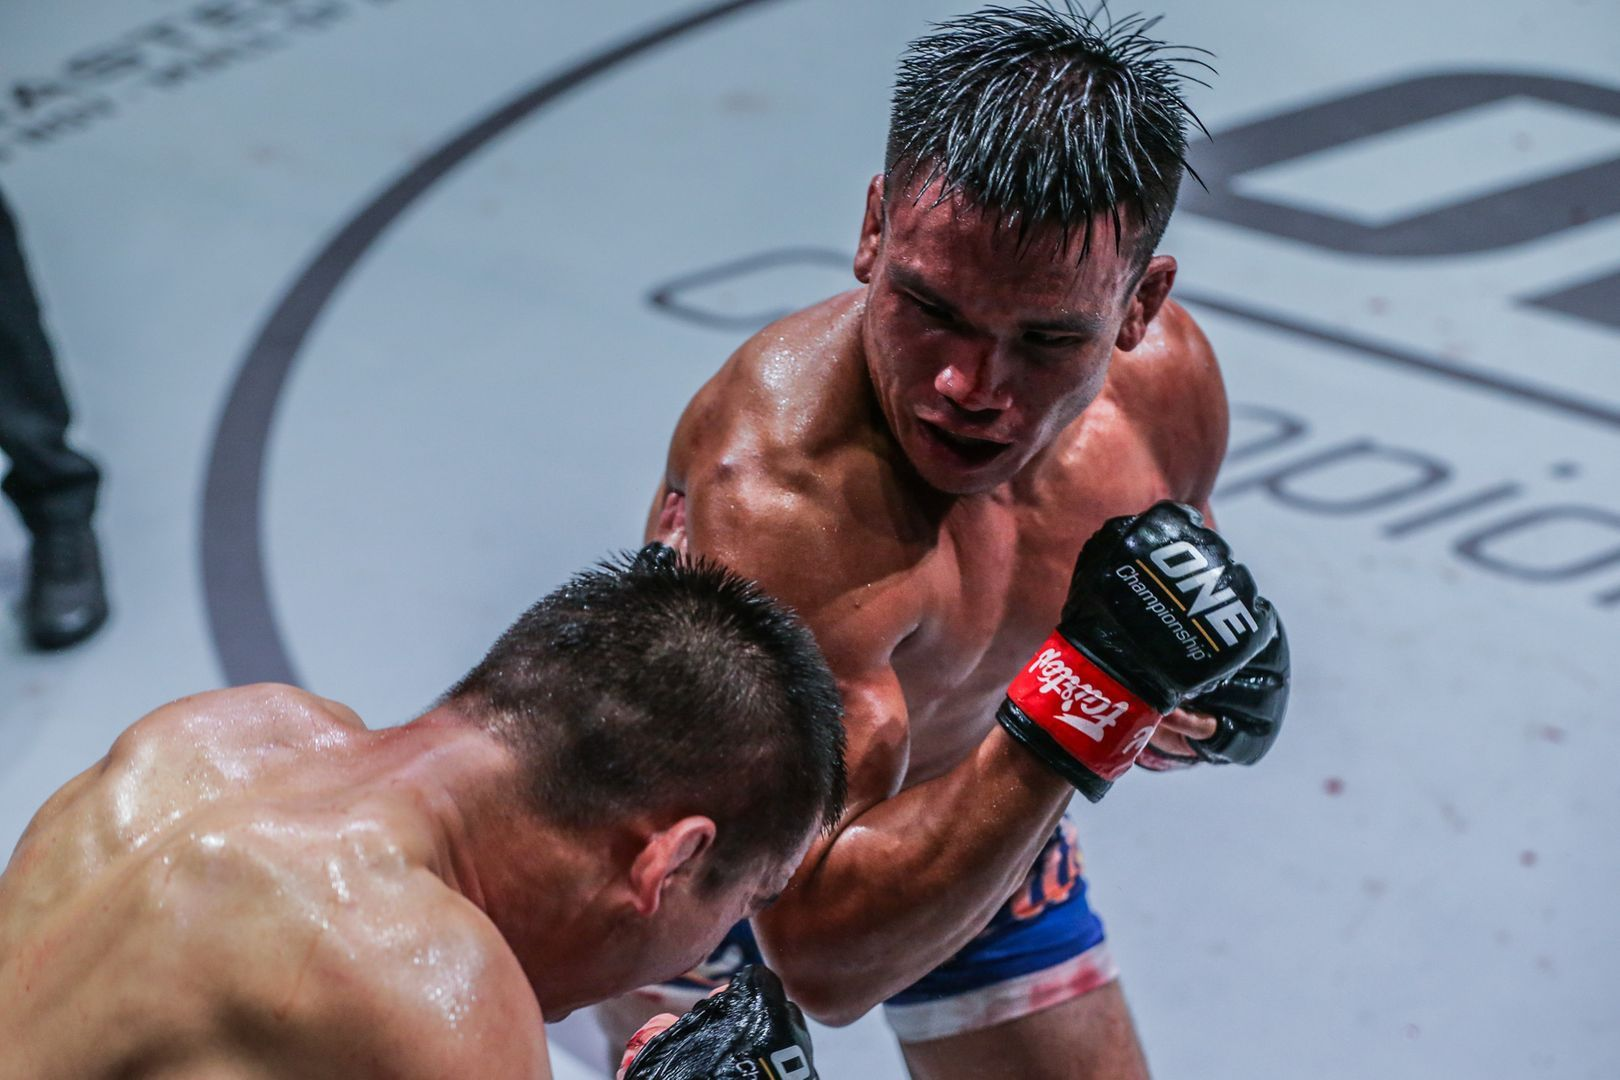 Filipino-Kiwi Mark Fairtex Abelardo gunning for the knockout blow